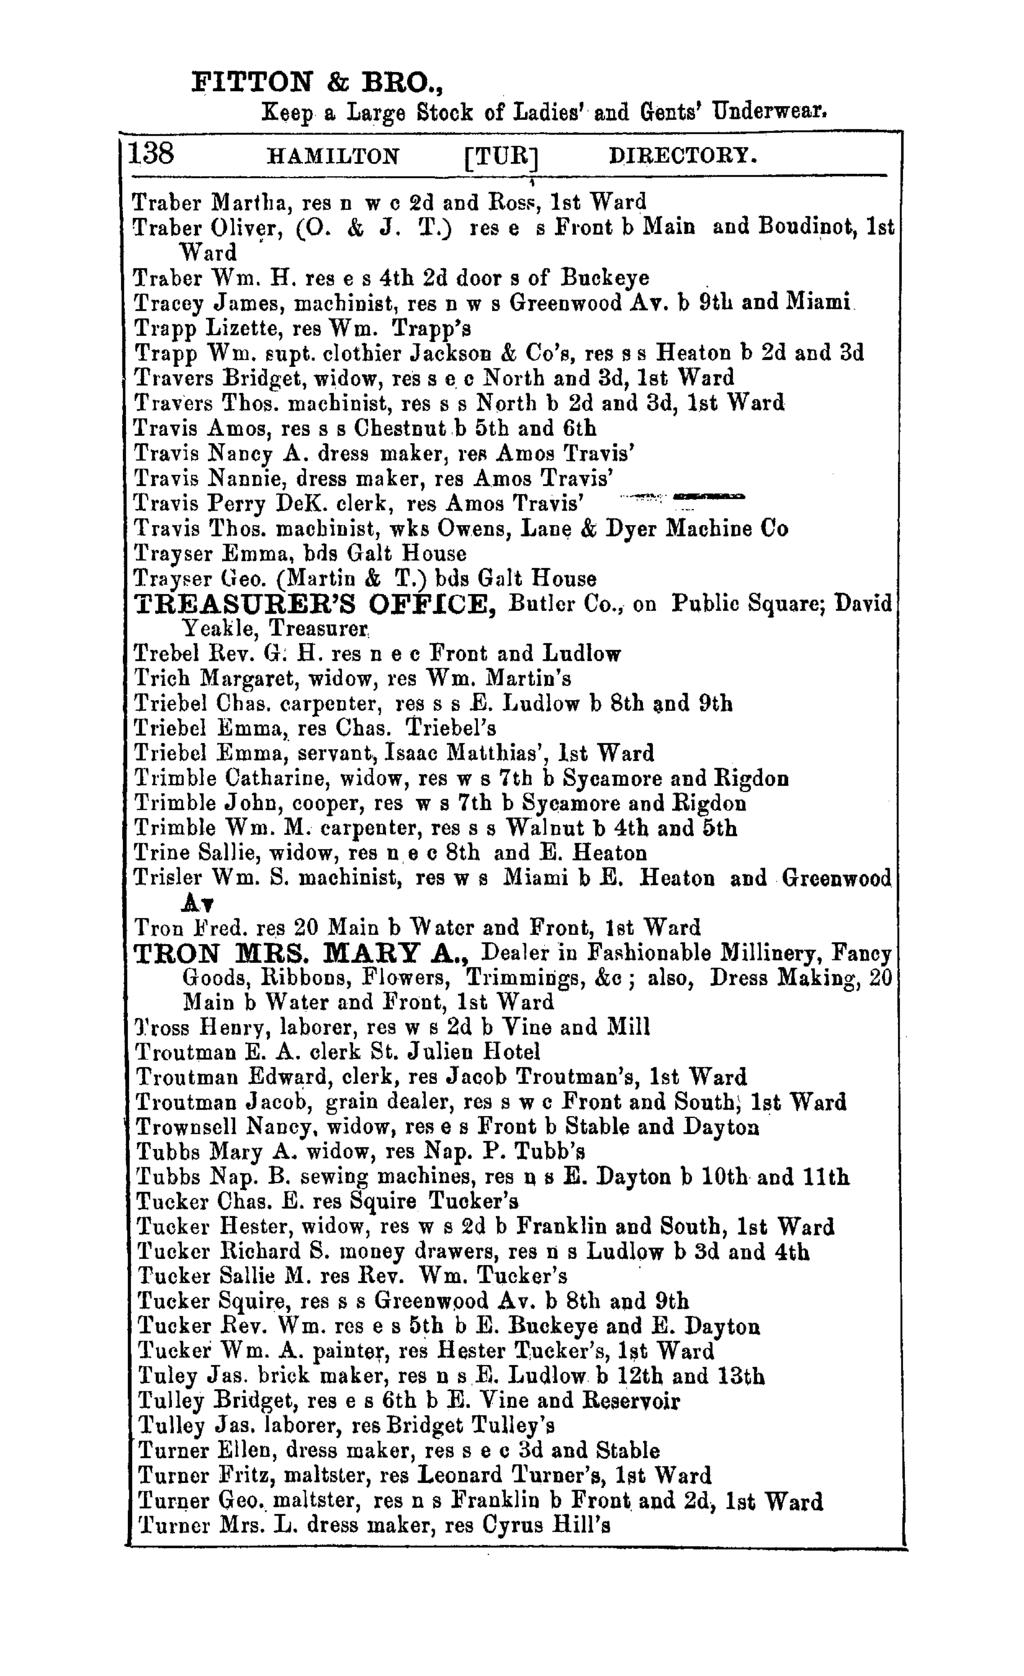 FITTON & BRO., K~ep a Large Stock of Ladies' and Gents' Underwear. 138 HAMILTON [TUR] ])IRECTORY. Traber Martlla, res n w c 2d and ROSF, 1st Ward Traber Oliv~r, (0. & J. T.) res e s Front b Main and Boudinot, 1st Ward Traber Wm.